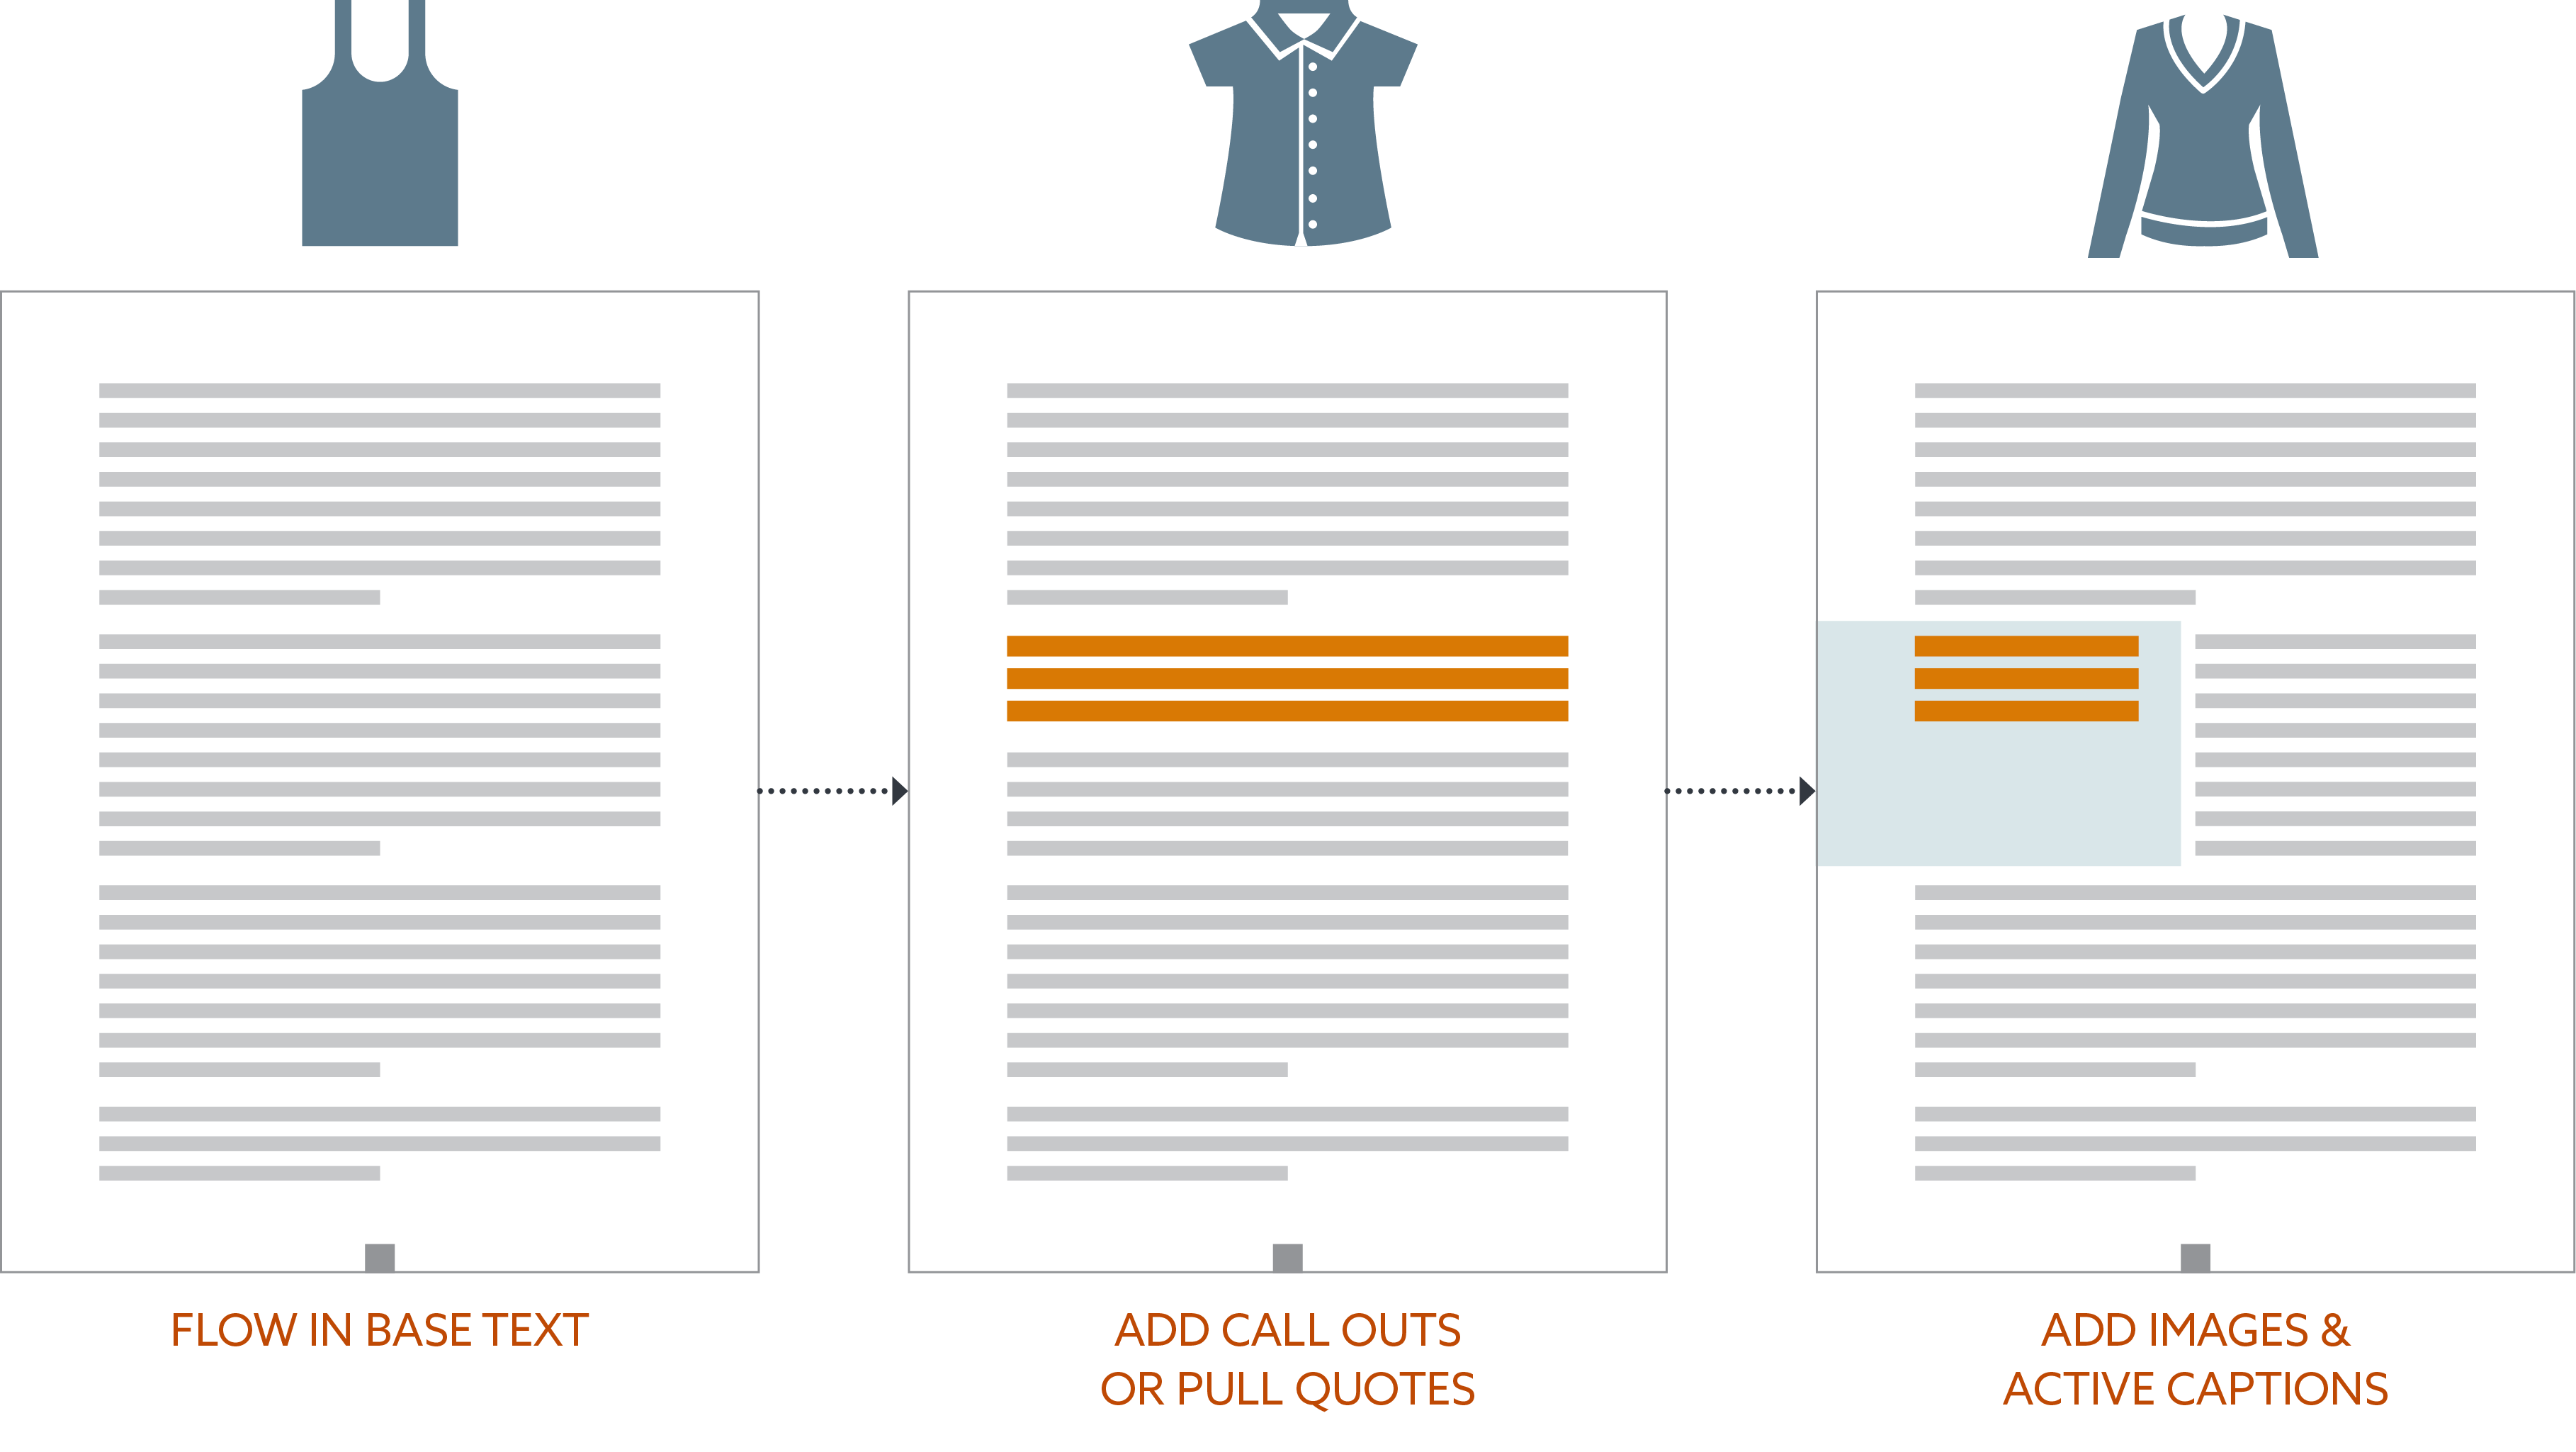 Diagram of various page layouts